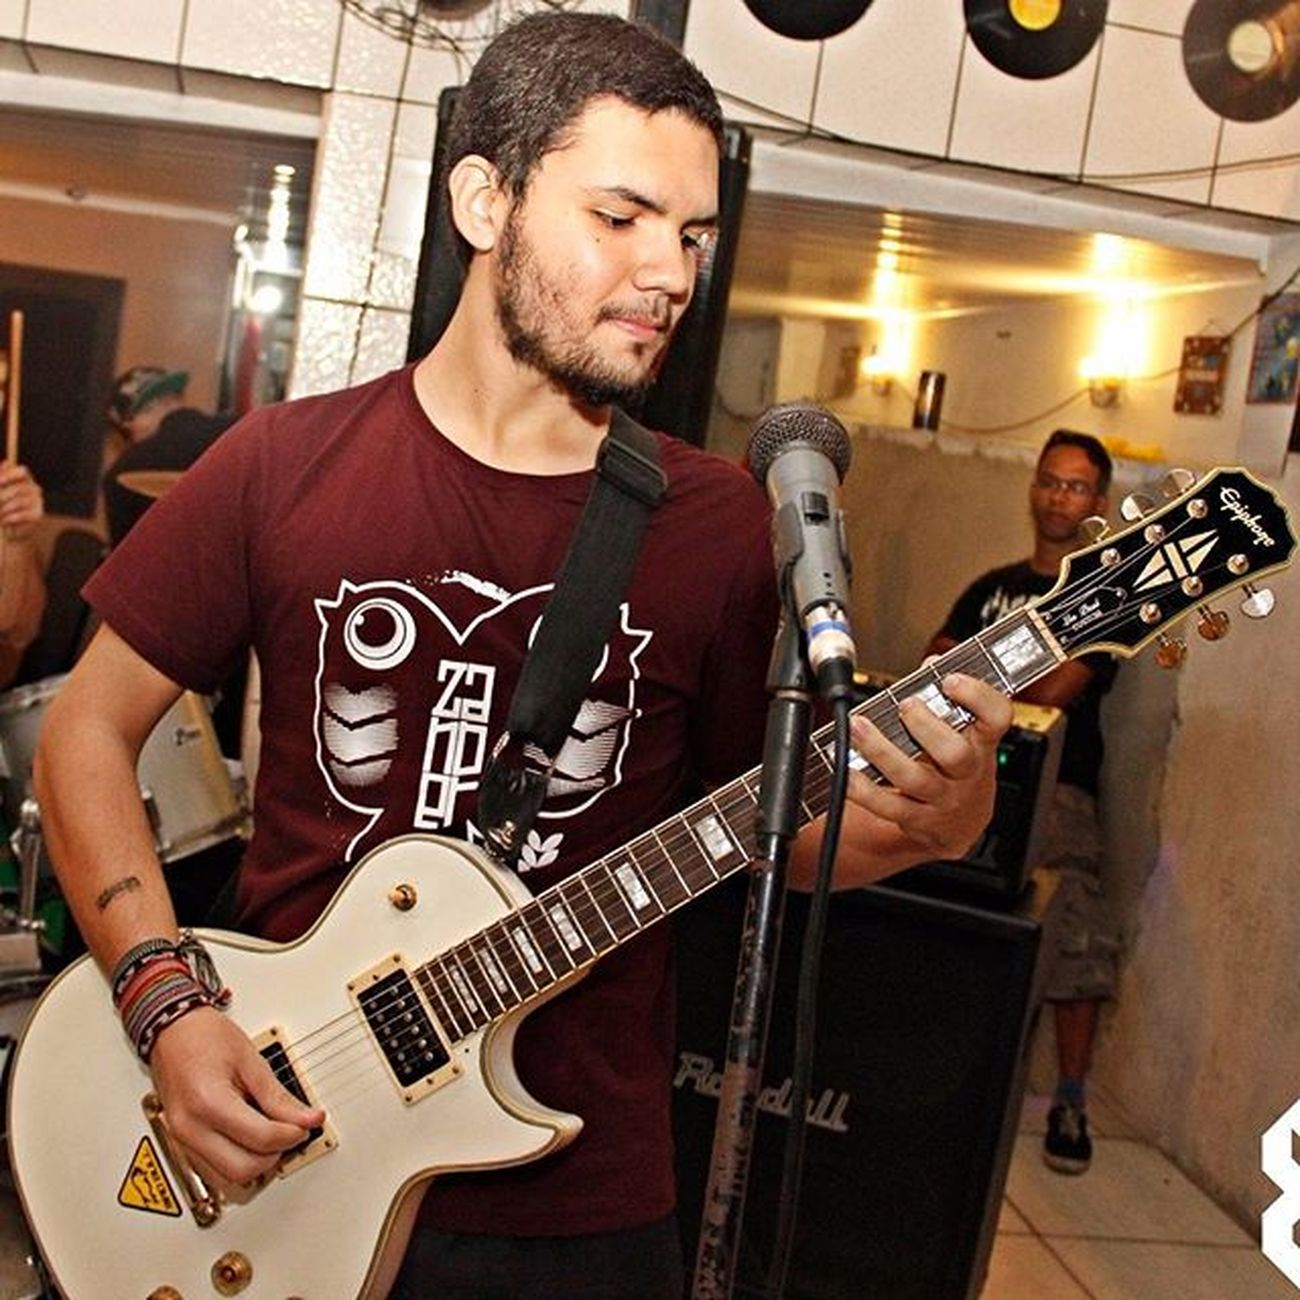 Show do Our Conception no Encosta na Quebrada 6 no Central do Brasil em Santos (29/08/2015) Foto por: @muxxxis Ourconception Show Foto Epiphone Lespaul Central Lespaulcustom